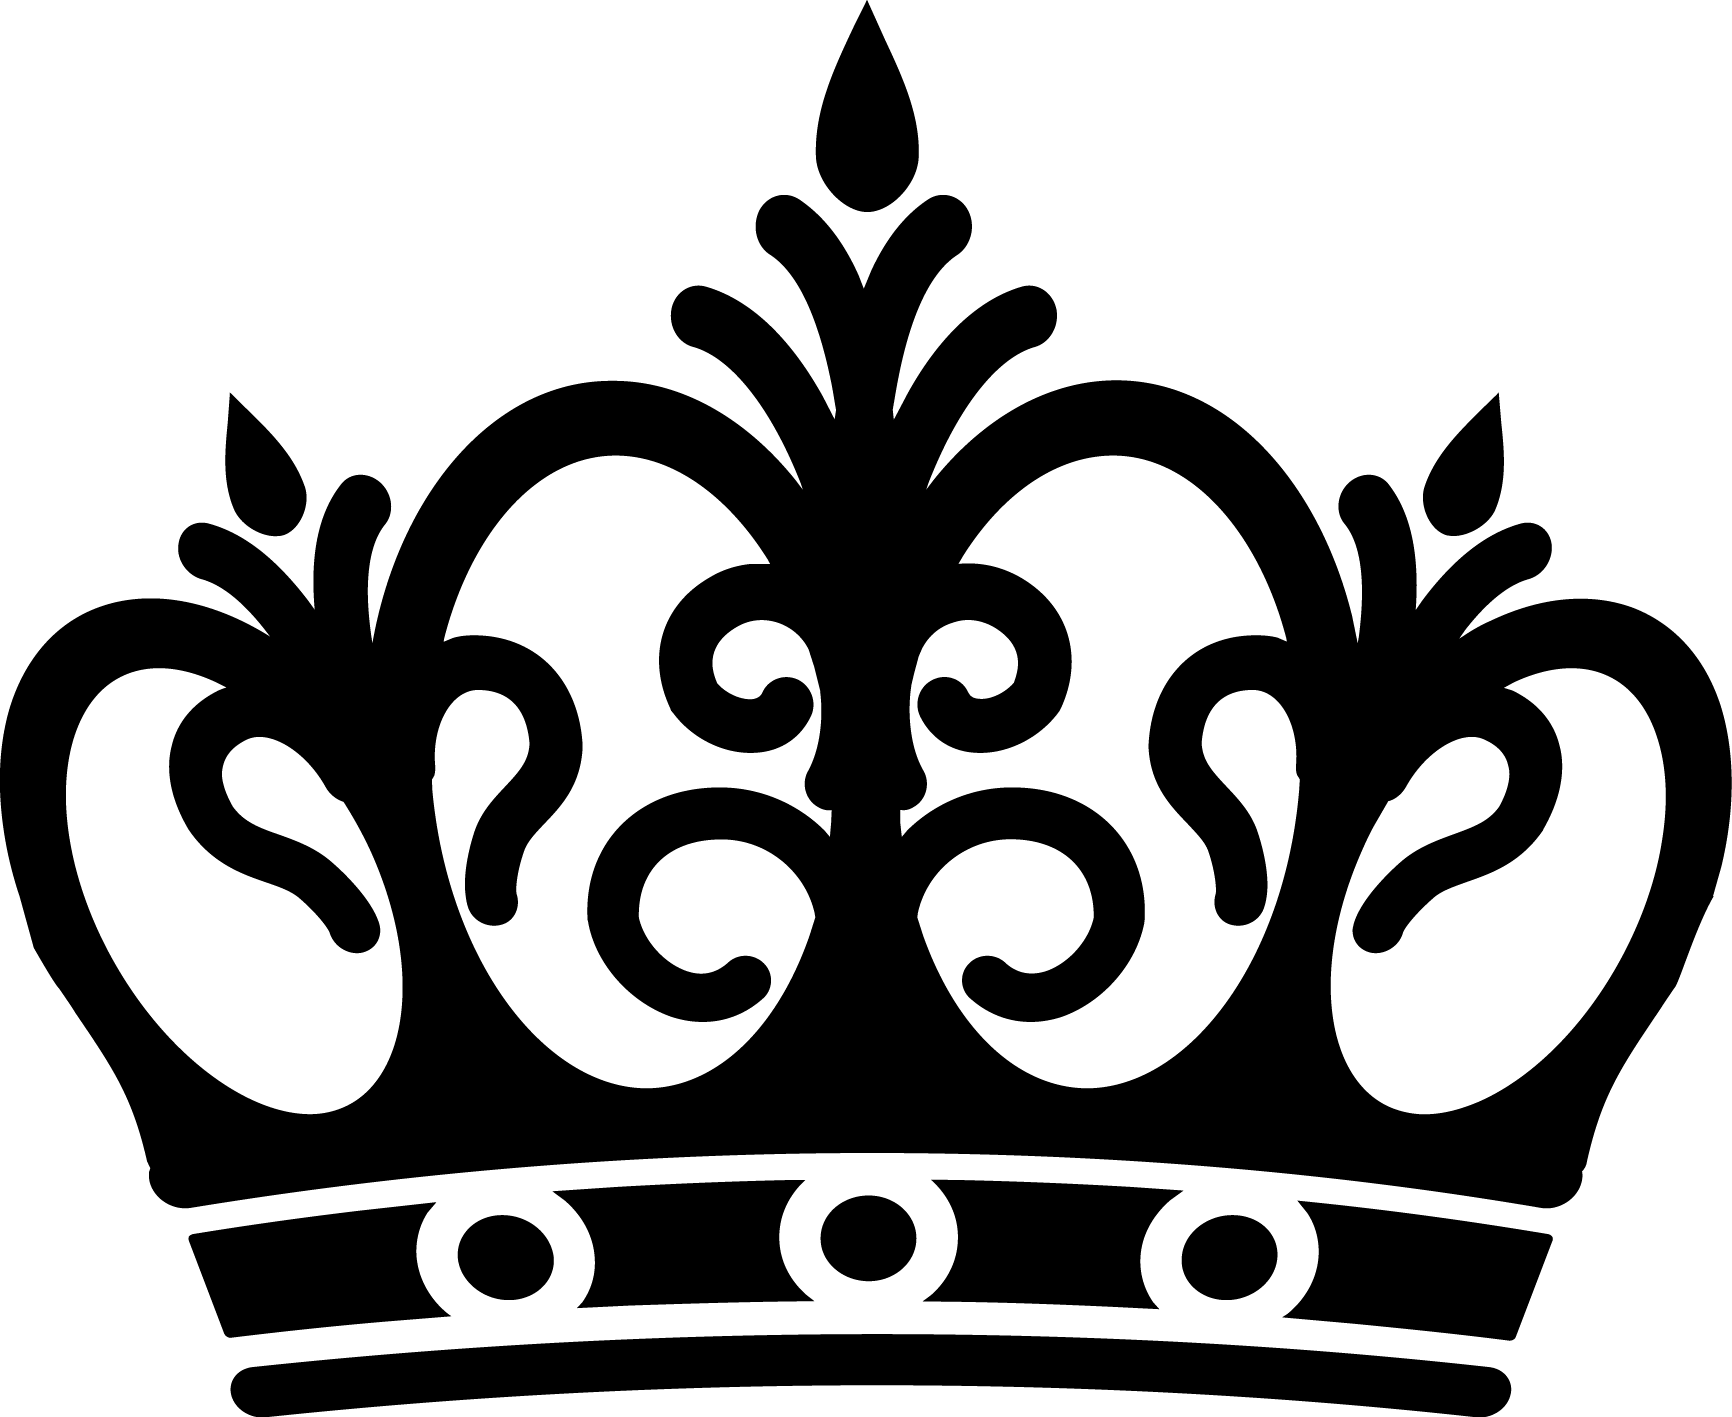 Crown Logo Wallpapers | Crown clip art, Crown drawing ...